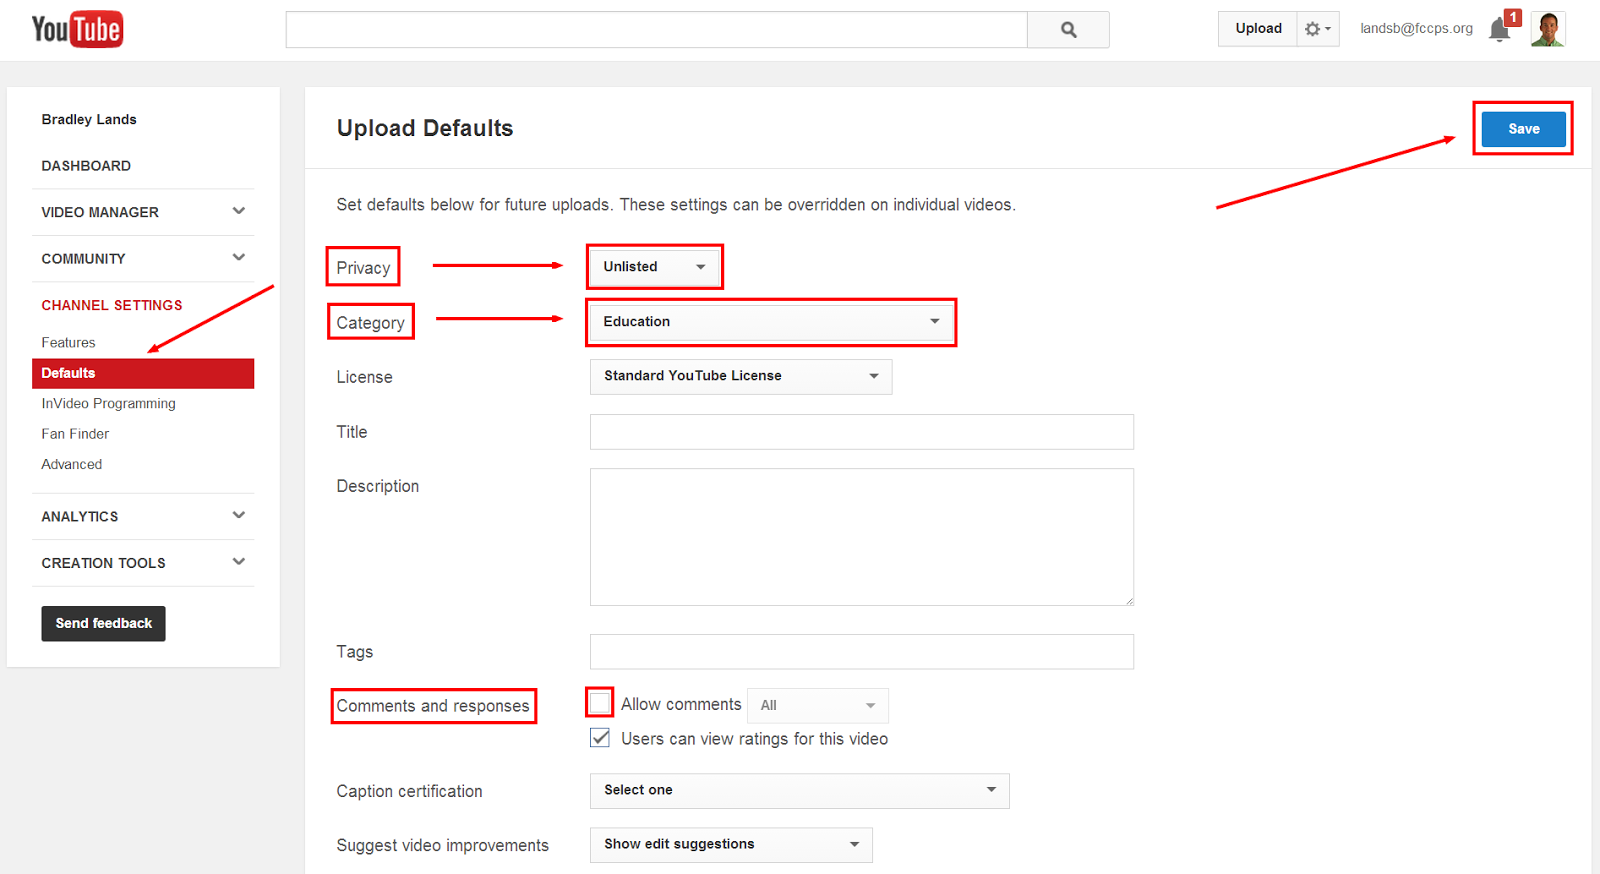 how to change youtube vidoe to private